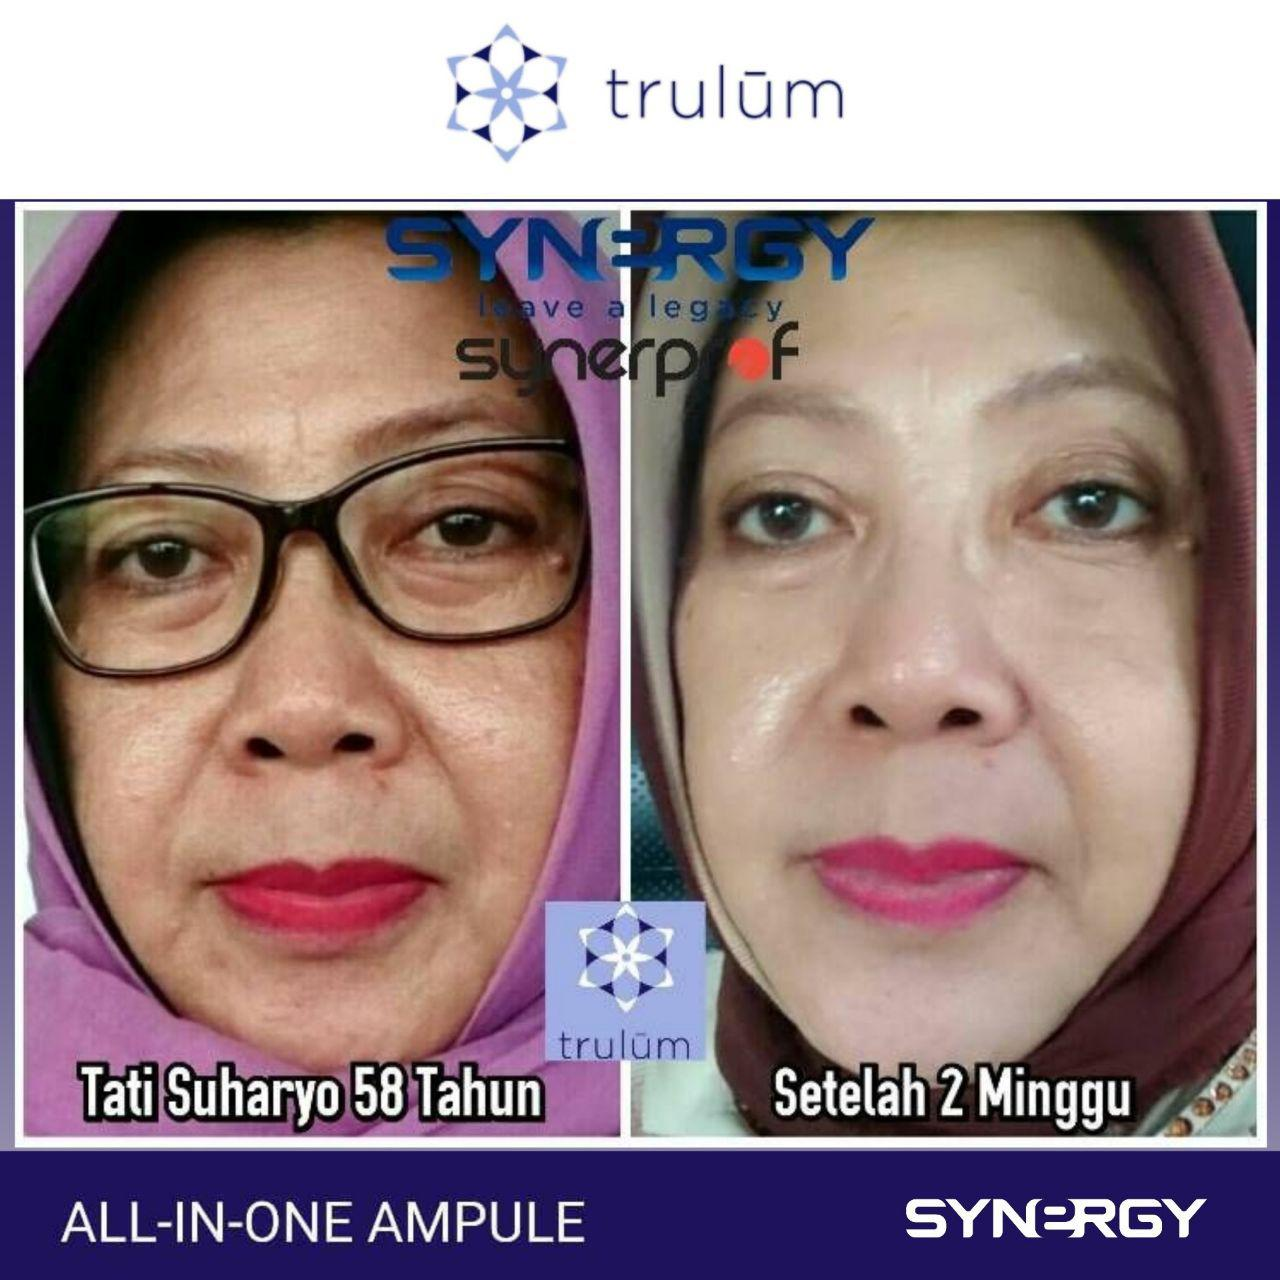 Klinik Kecantikan Trulum All In One Ampoule Di Rancah, Ciamis WA: 08112338376